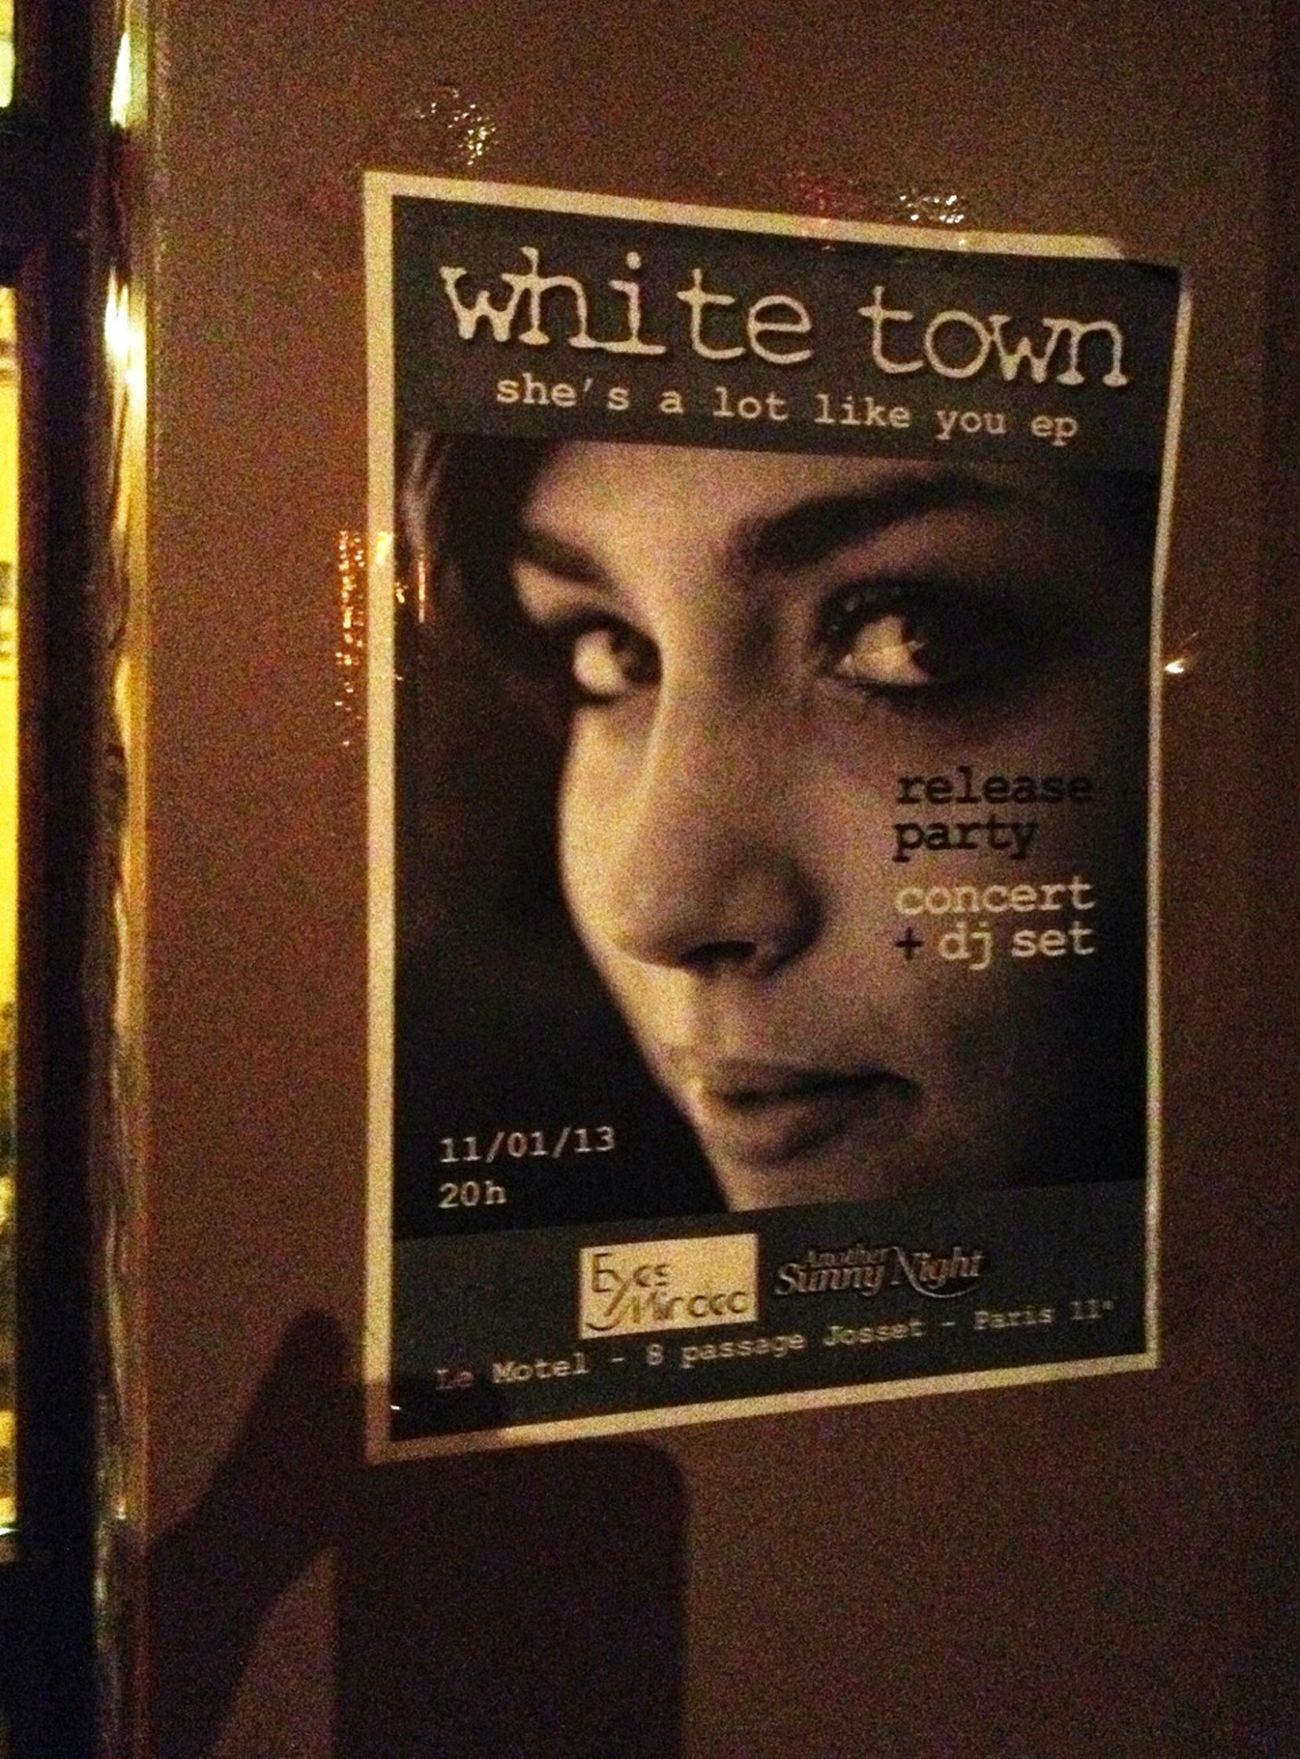 Single / gig poster at the venue.